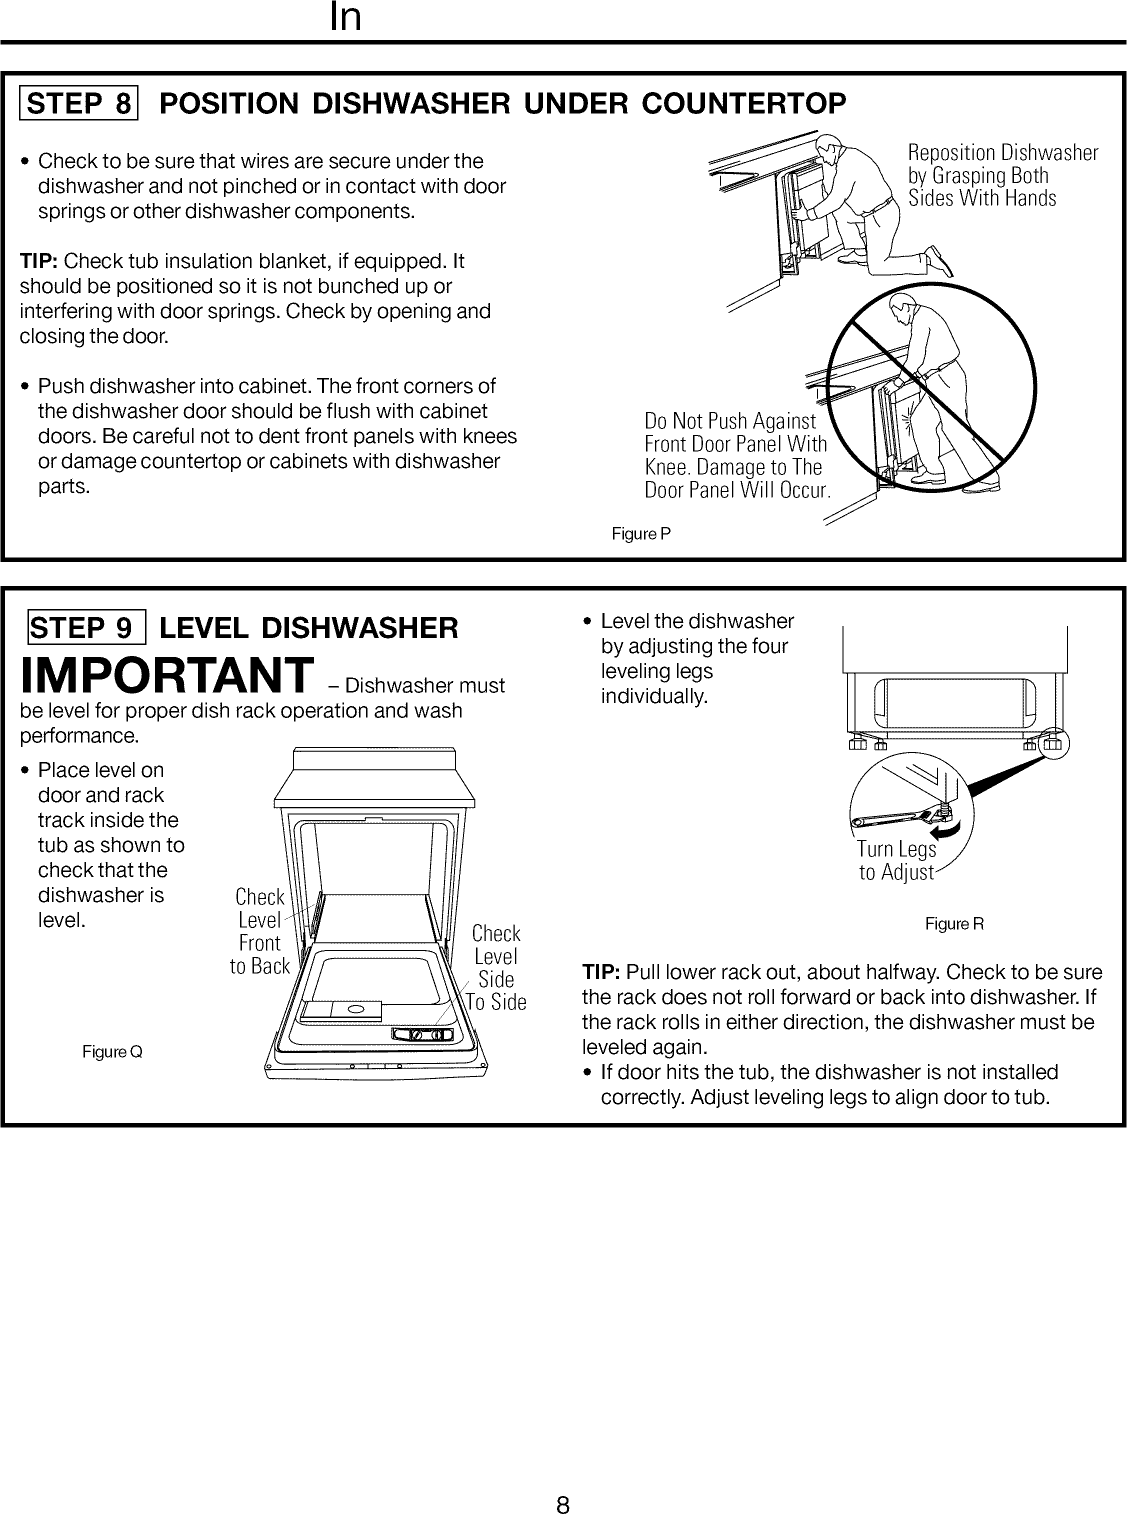 Frigidaire Ffbd1821ms1b User Manual Dishwasher Manuals And Guides Schematic Diagram Page 8 Of 12 1108343l